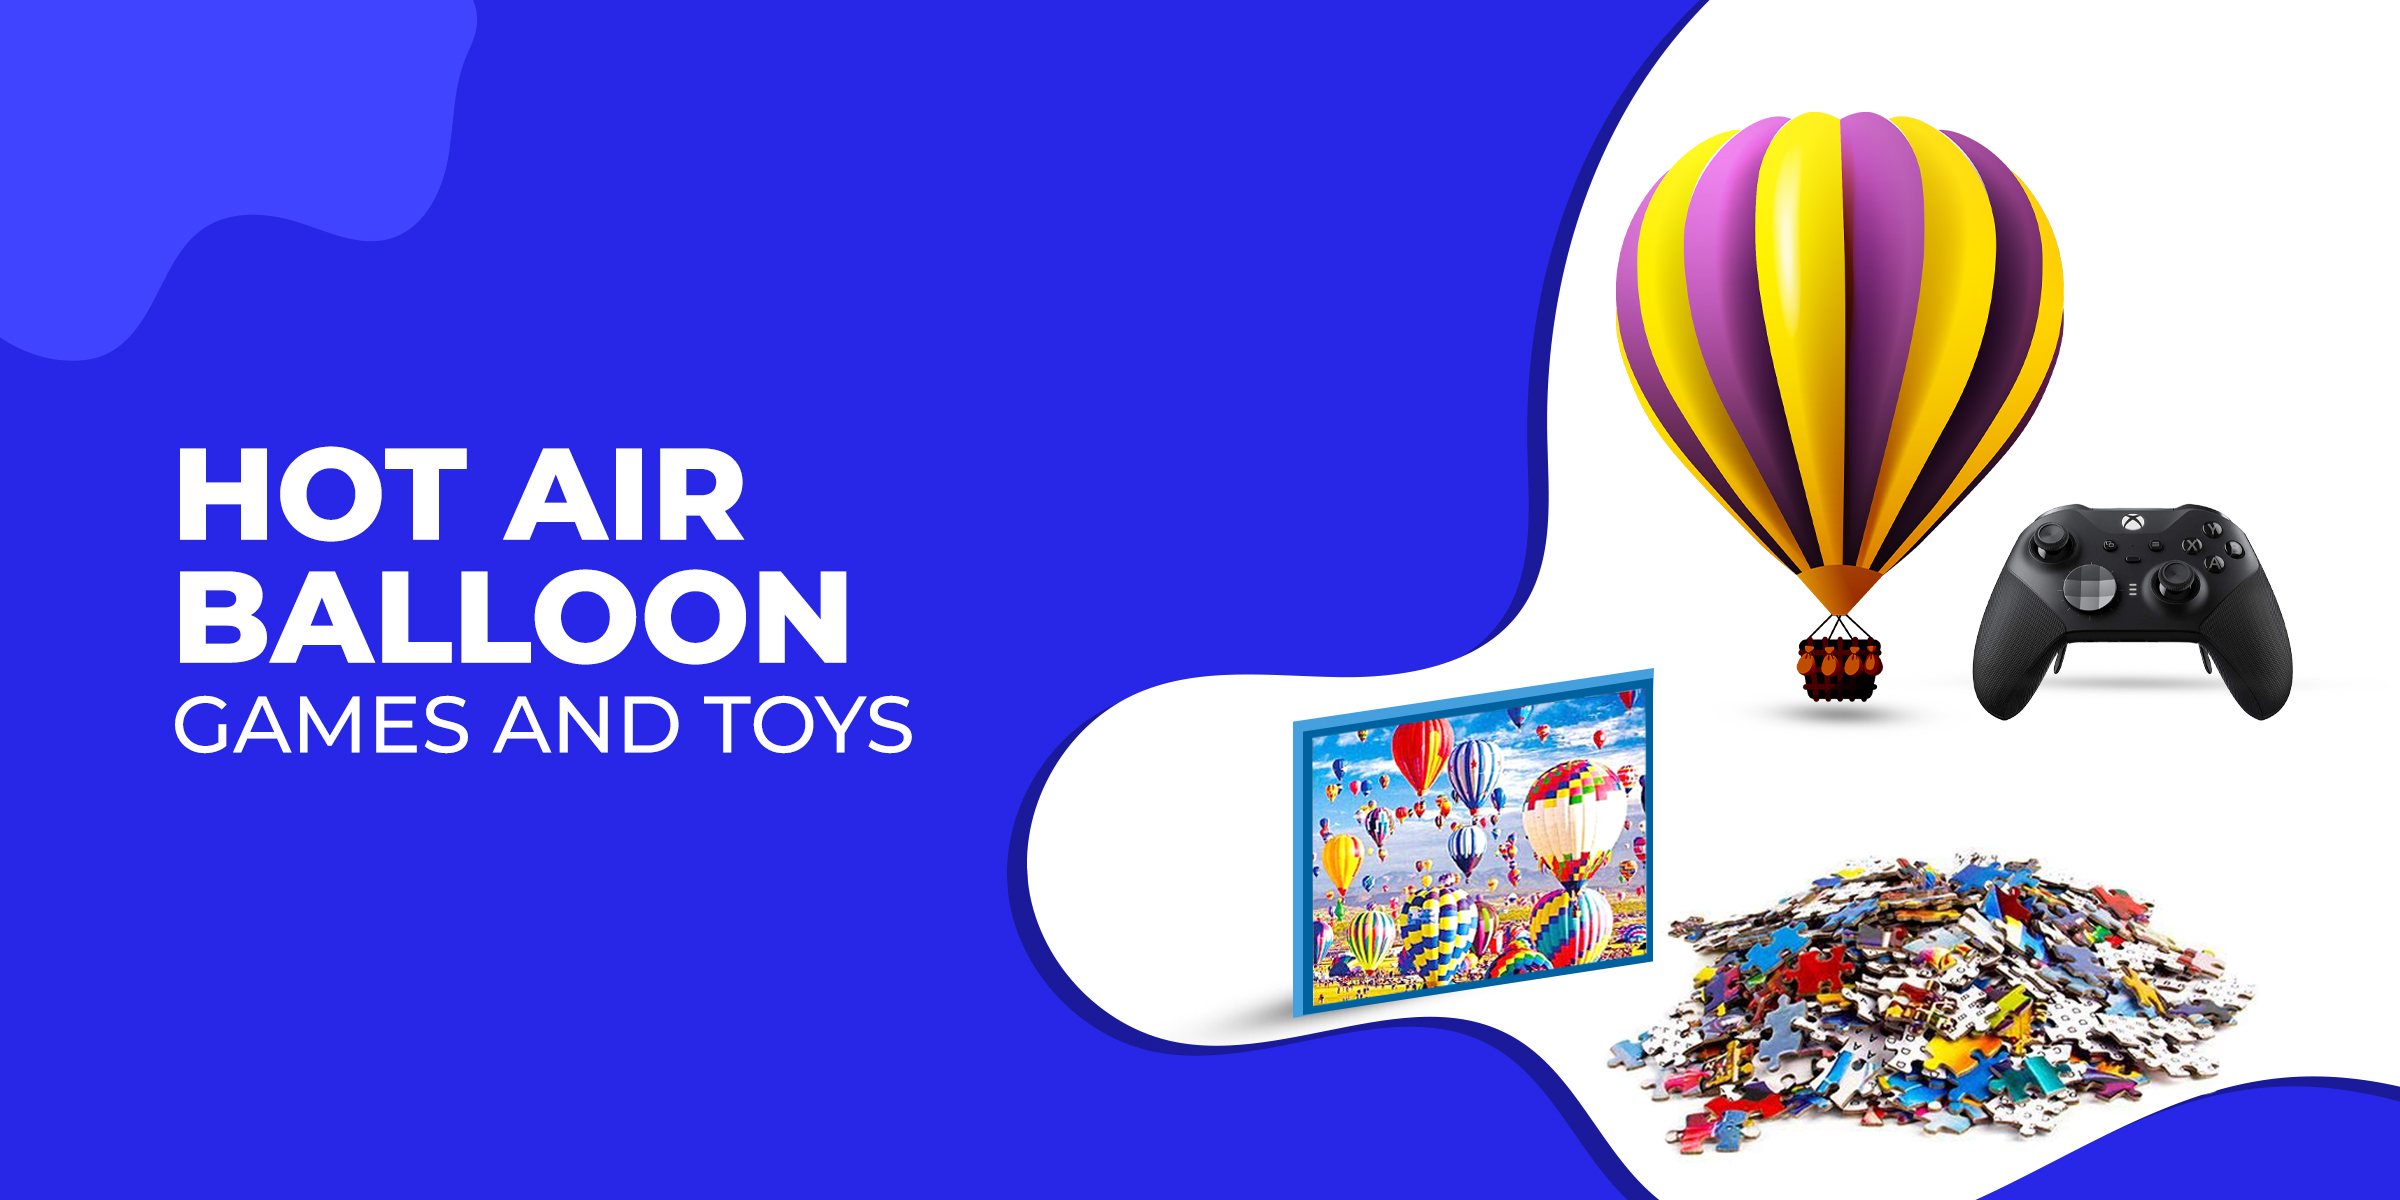 Hot air balloon games and toys